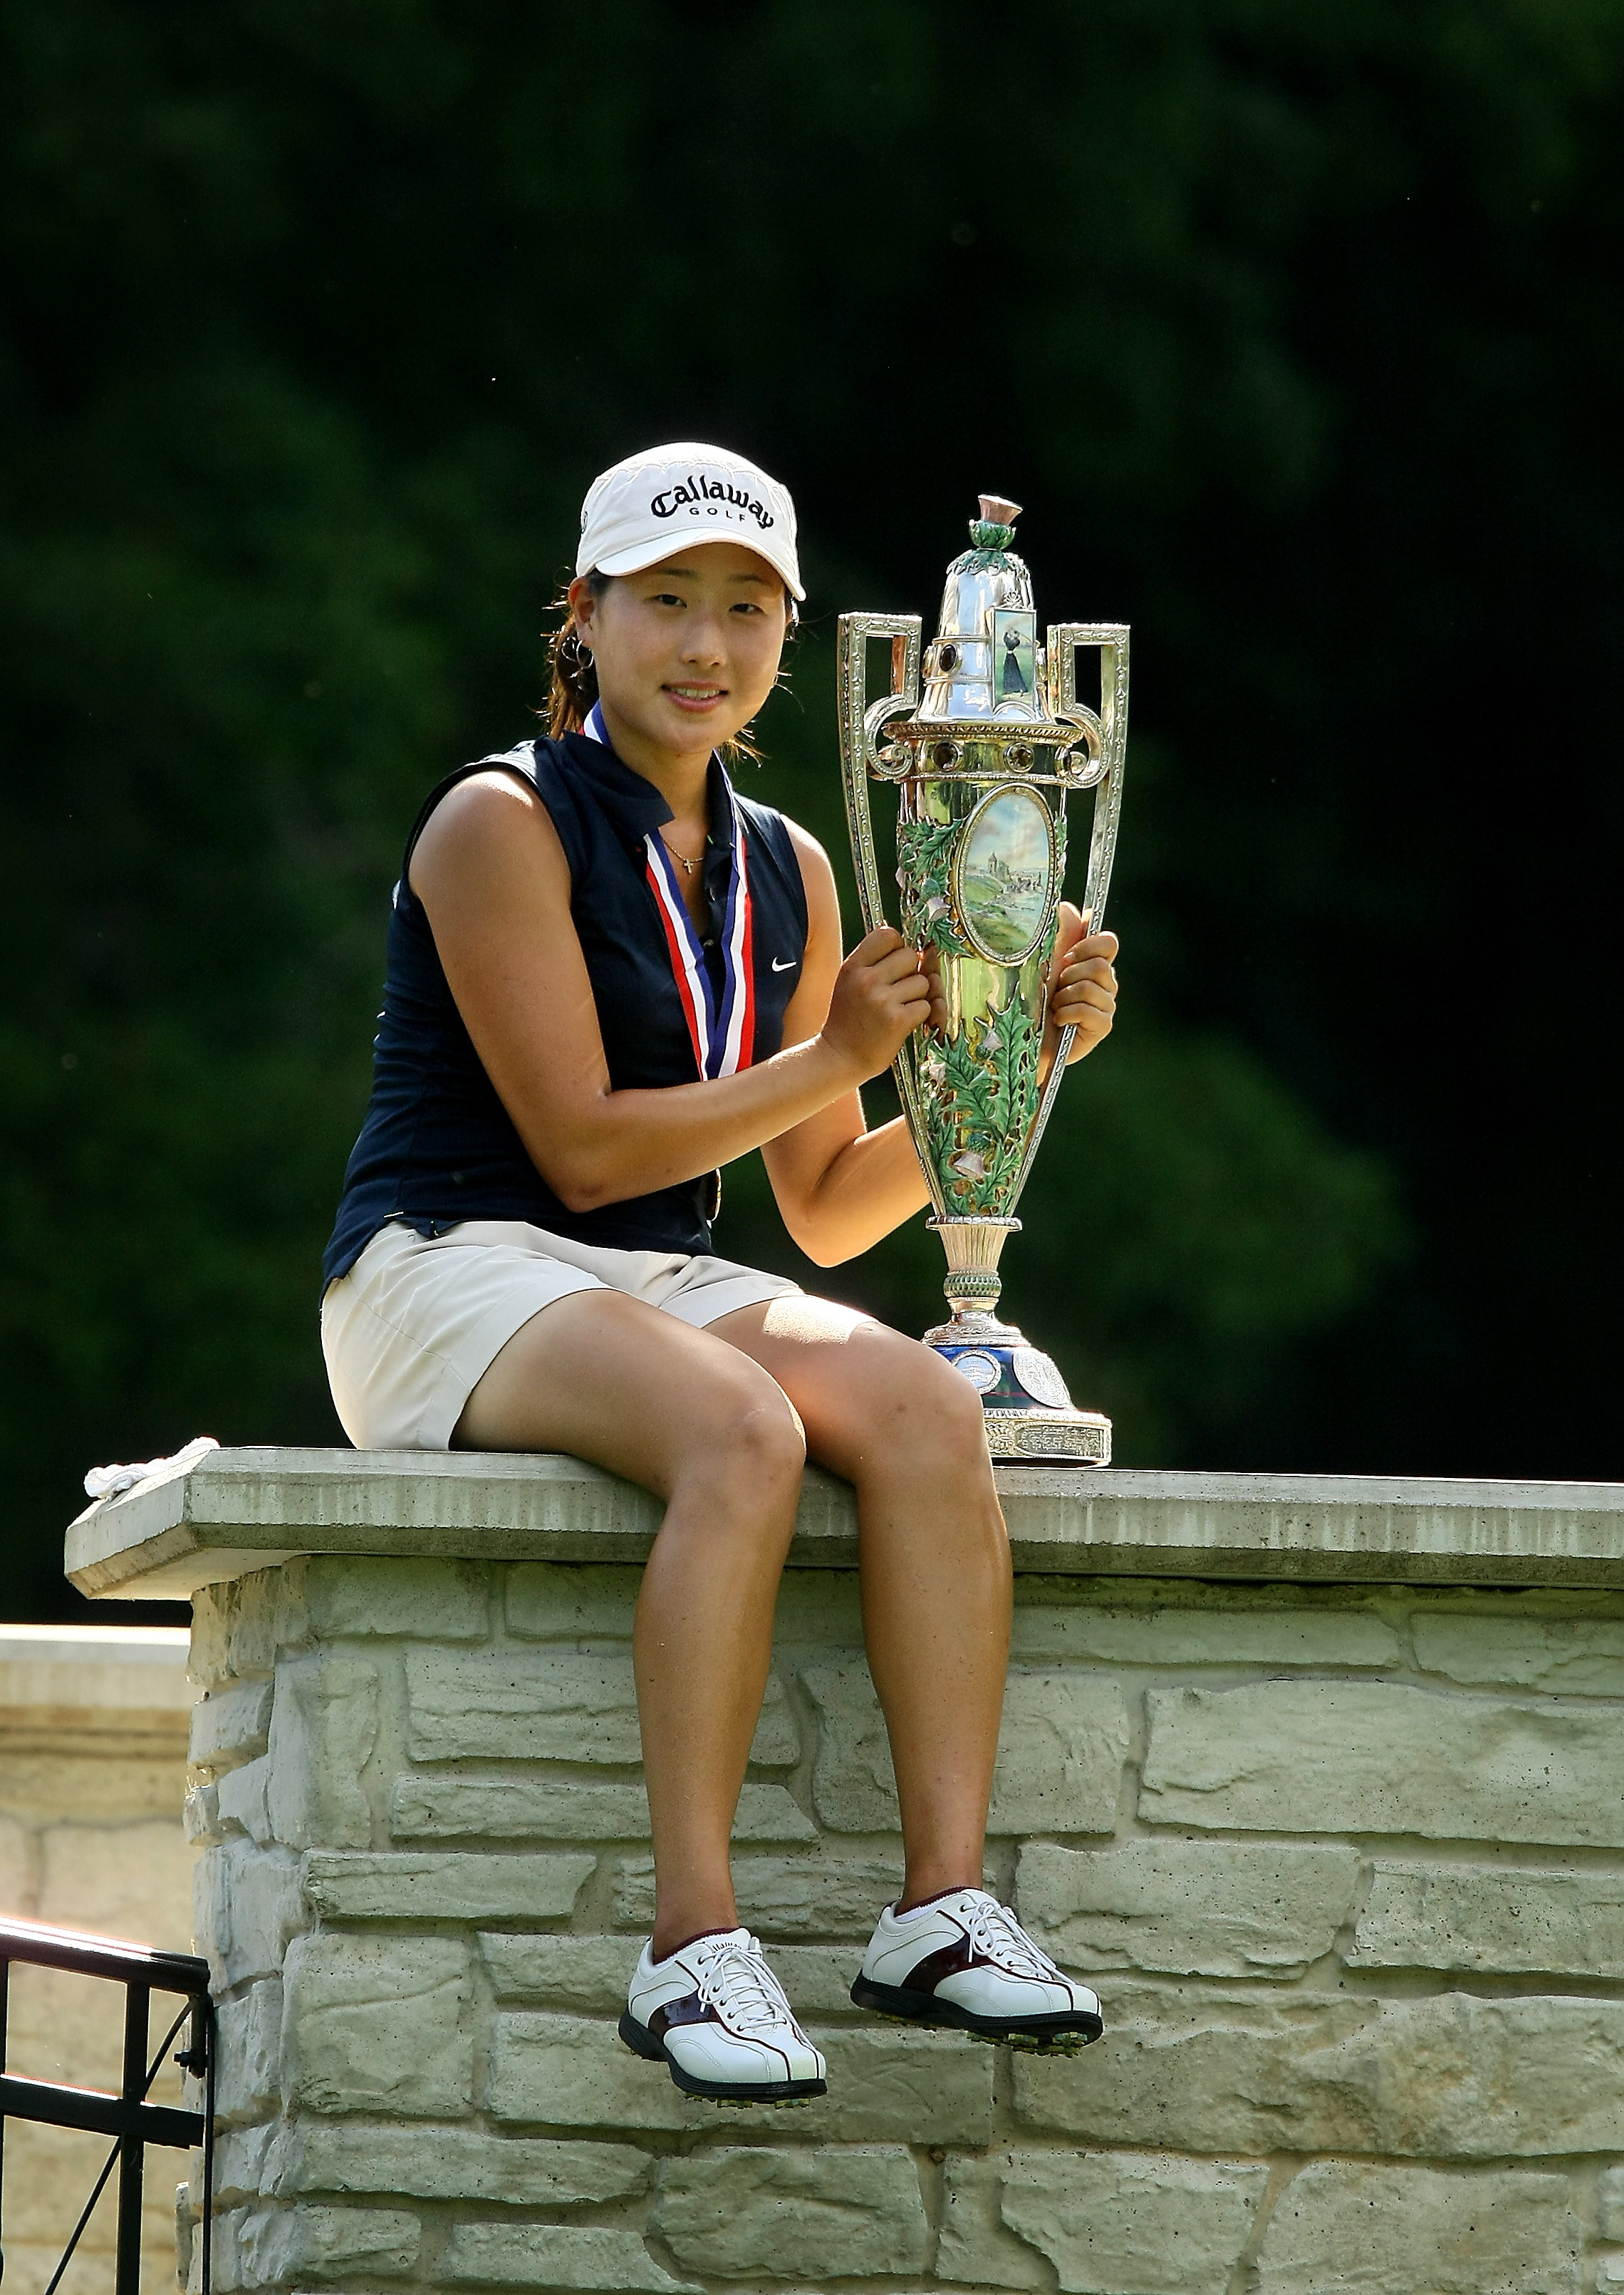 Jennifer Song poses with the Robert Cox Cup after winning the 2009 U.S. Women's Amateur Championship.